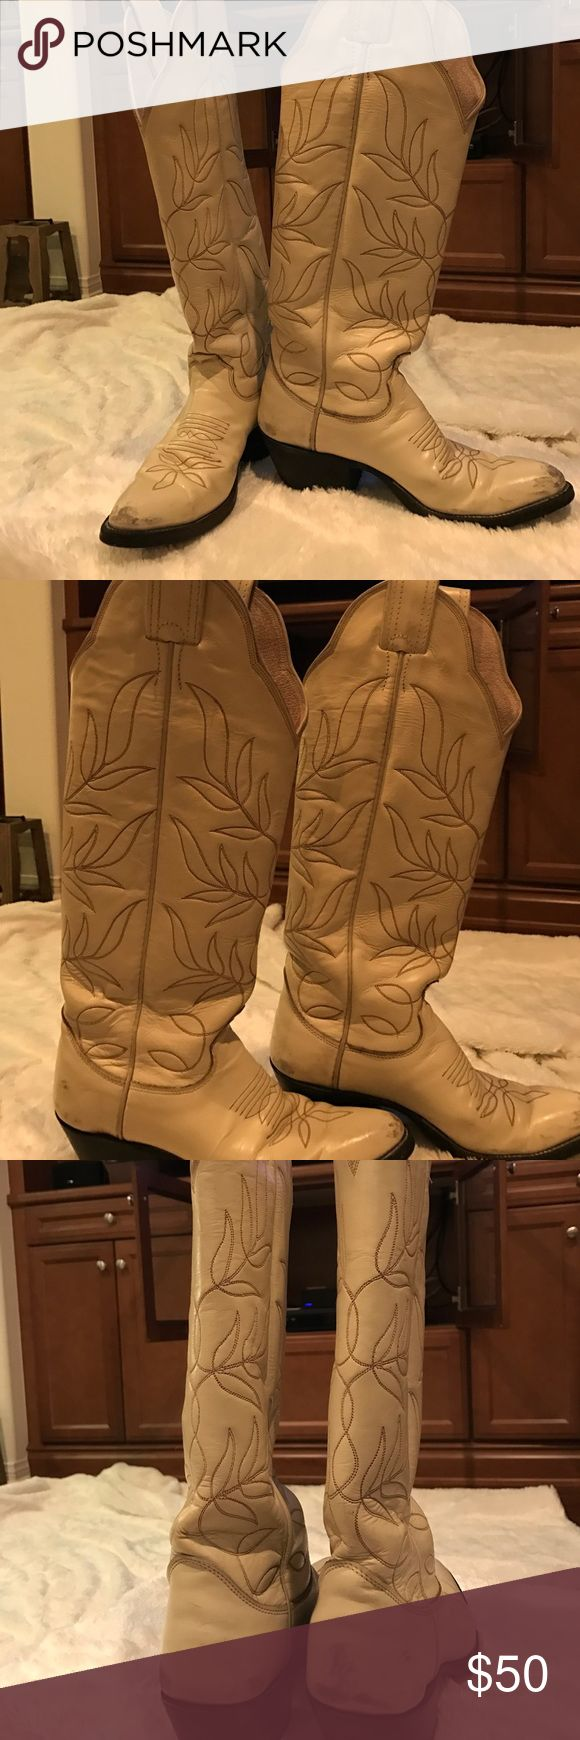 Size 4.5 Ivory Olathe Boot Co cowgirl boots They are marked size 4.5 but fit size 5 foot. These are vintage! Worn in genuine leather made in Texas cowgirl boots!! They are tall and look absolutely darling with any style jeans, skirts, and daisy duke shorts!! Wear them line dancing, to a theme party or to stagecoach!! These are perfect for anything country and western!! Shoes Heeled Boots